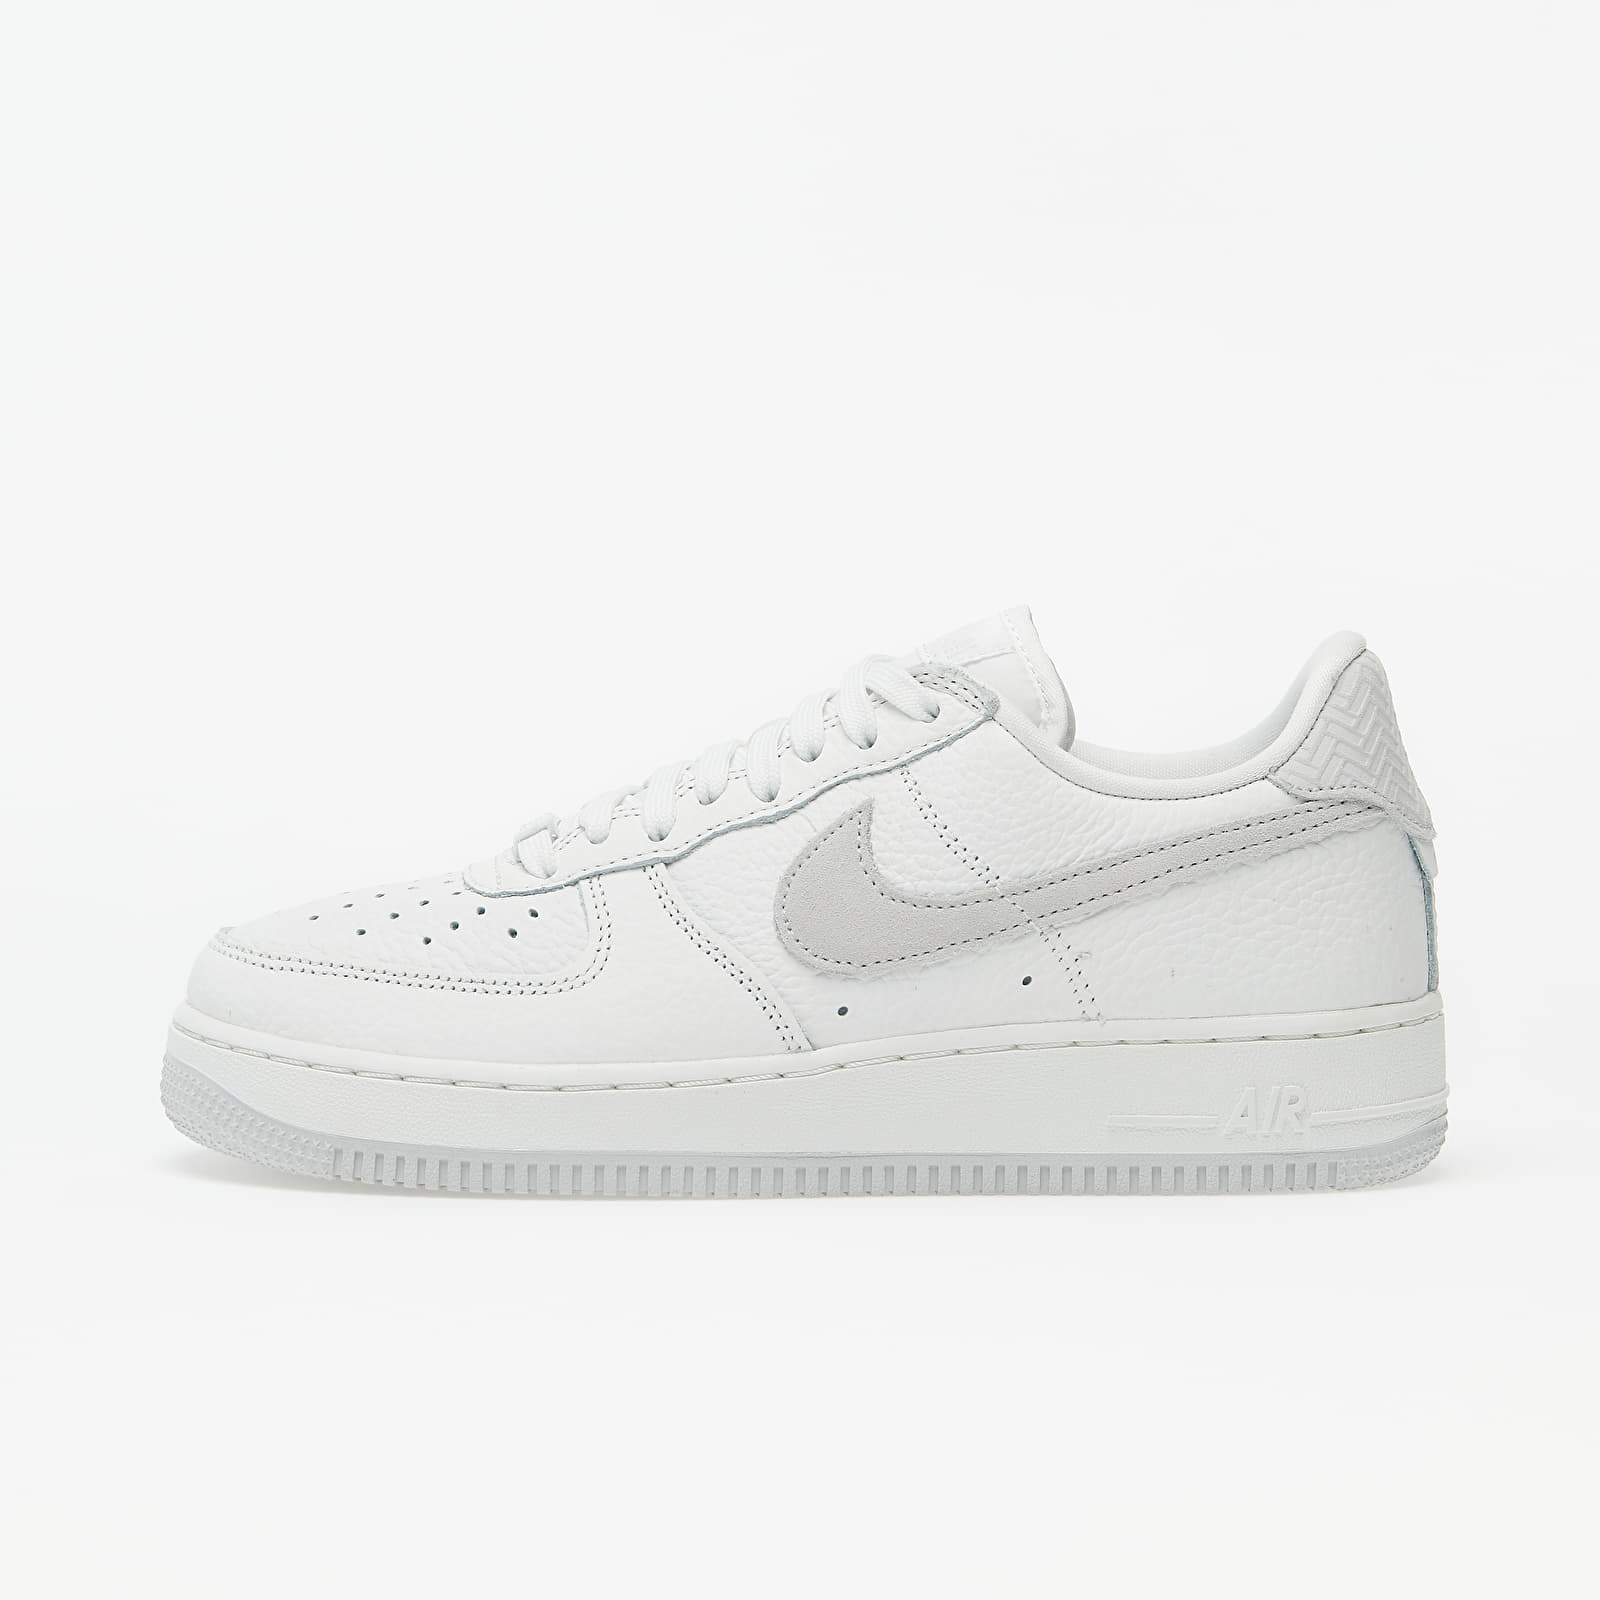 Zapatillas Hombre Nike Air Force 1 '07 Craft Summit White/ Photon Dust